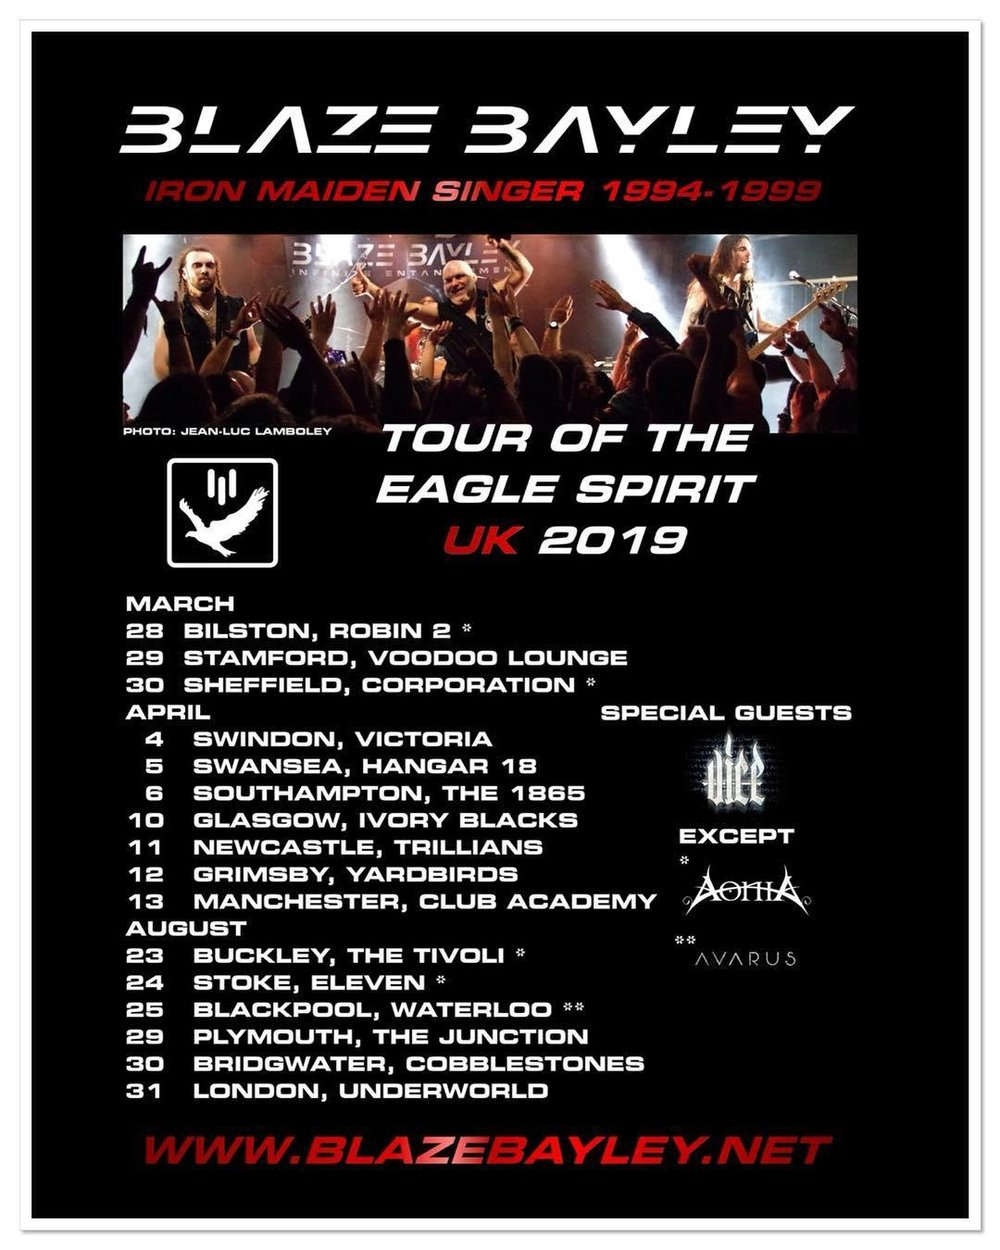 blaze-bayley-tour-of-the-eagle-spirit-2019-uk